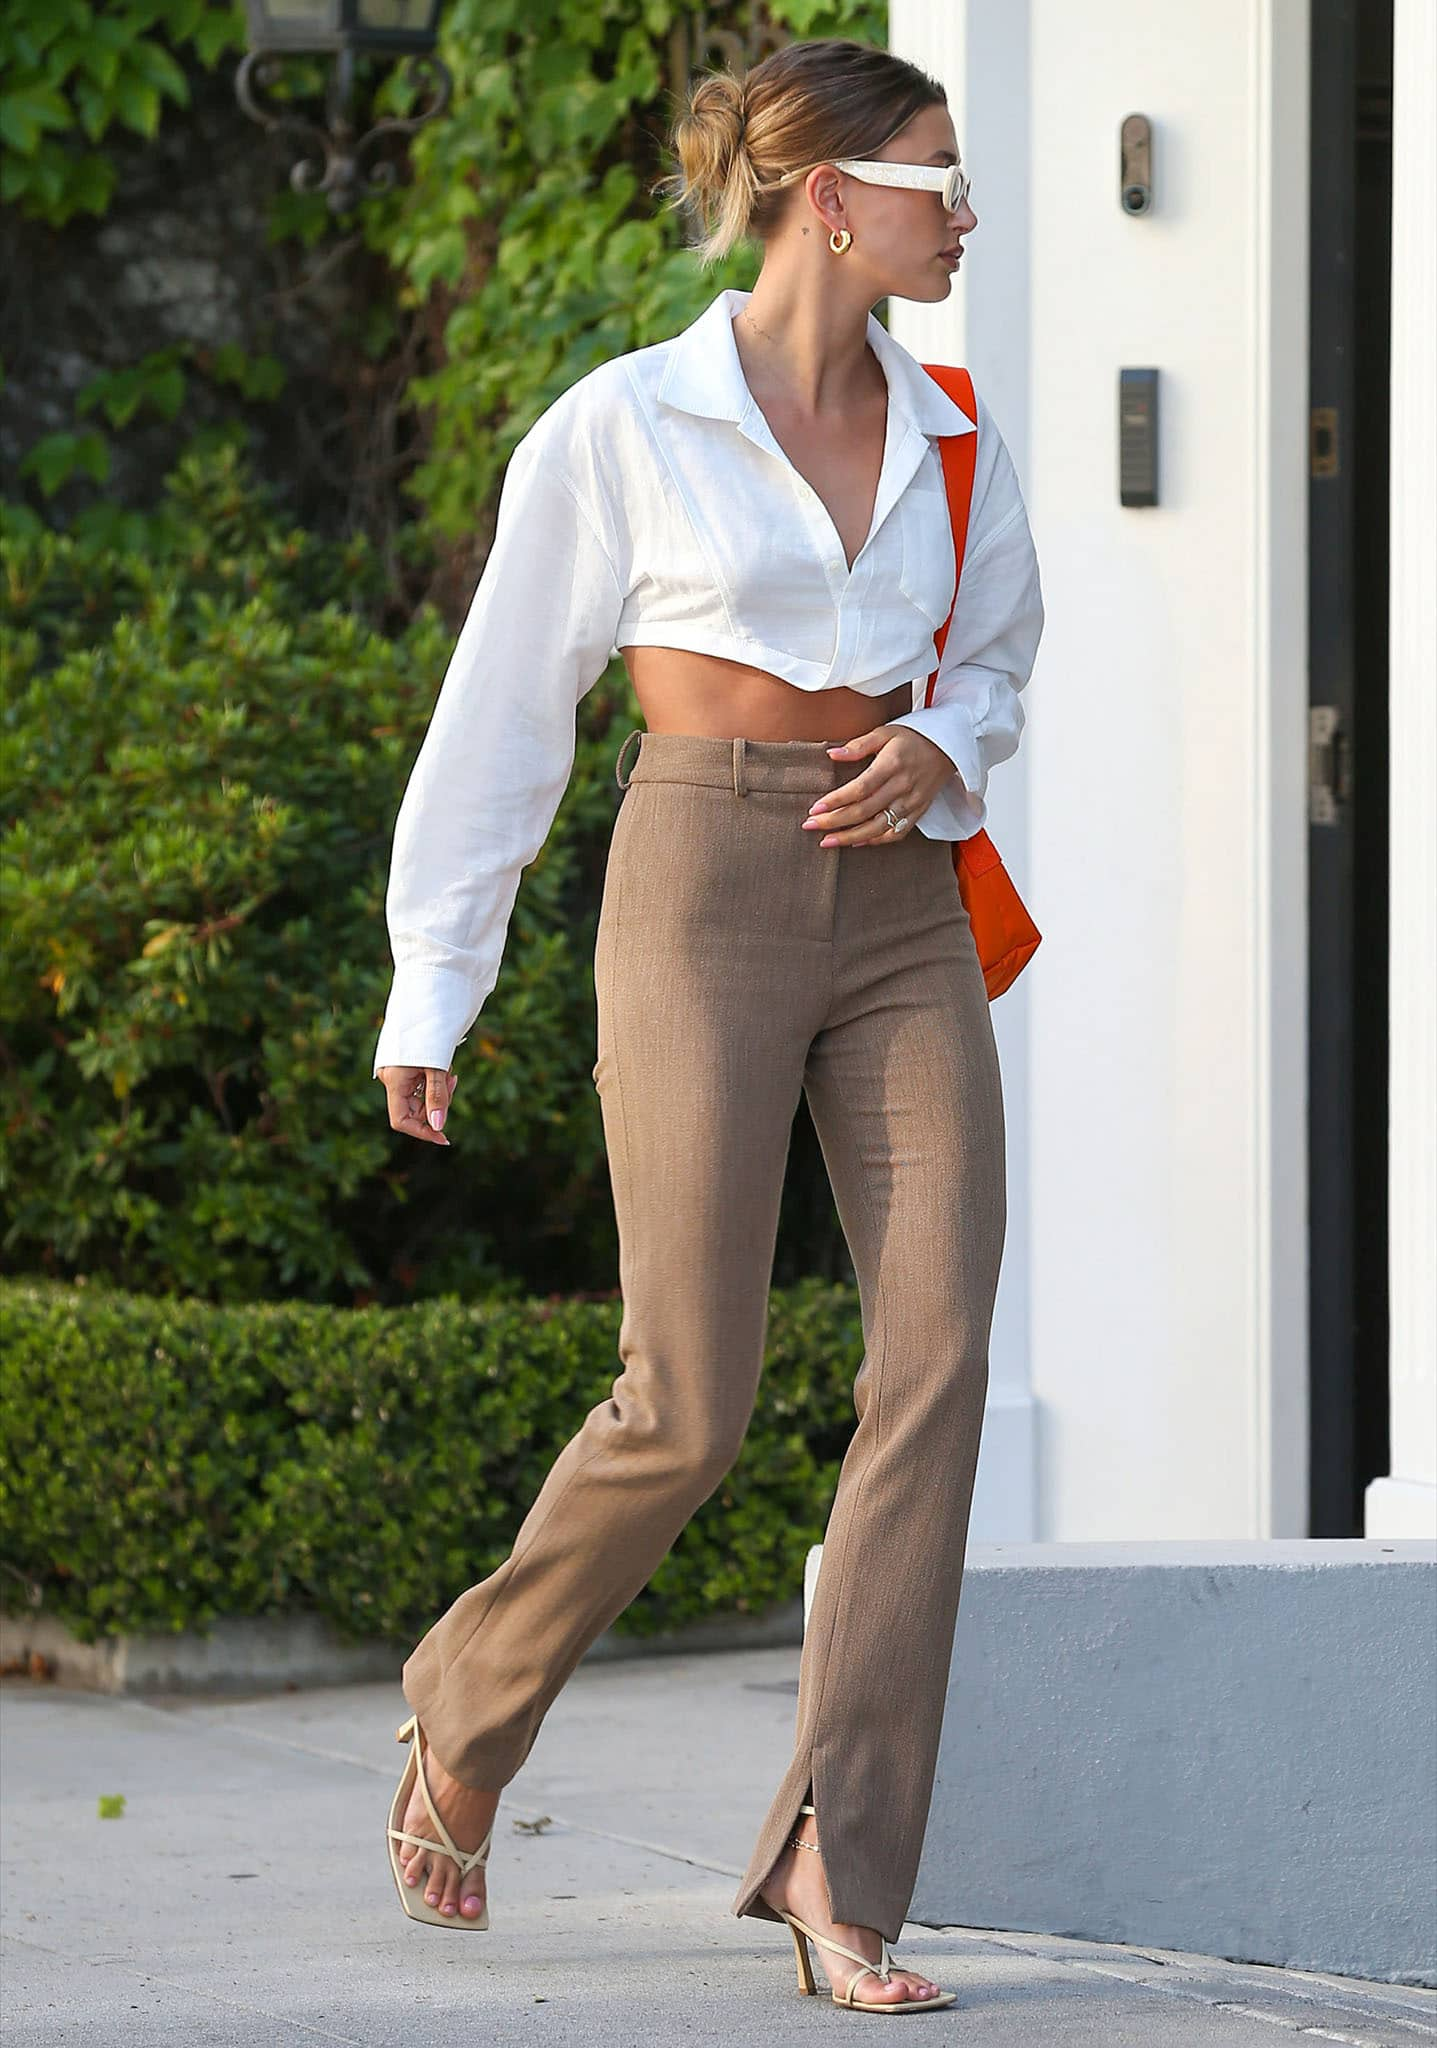 Hailey Bieber puts a sexy twist on business chic in Jacquemus crop white shirt and Musier high-waist trousers